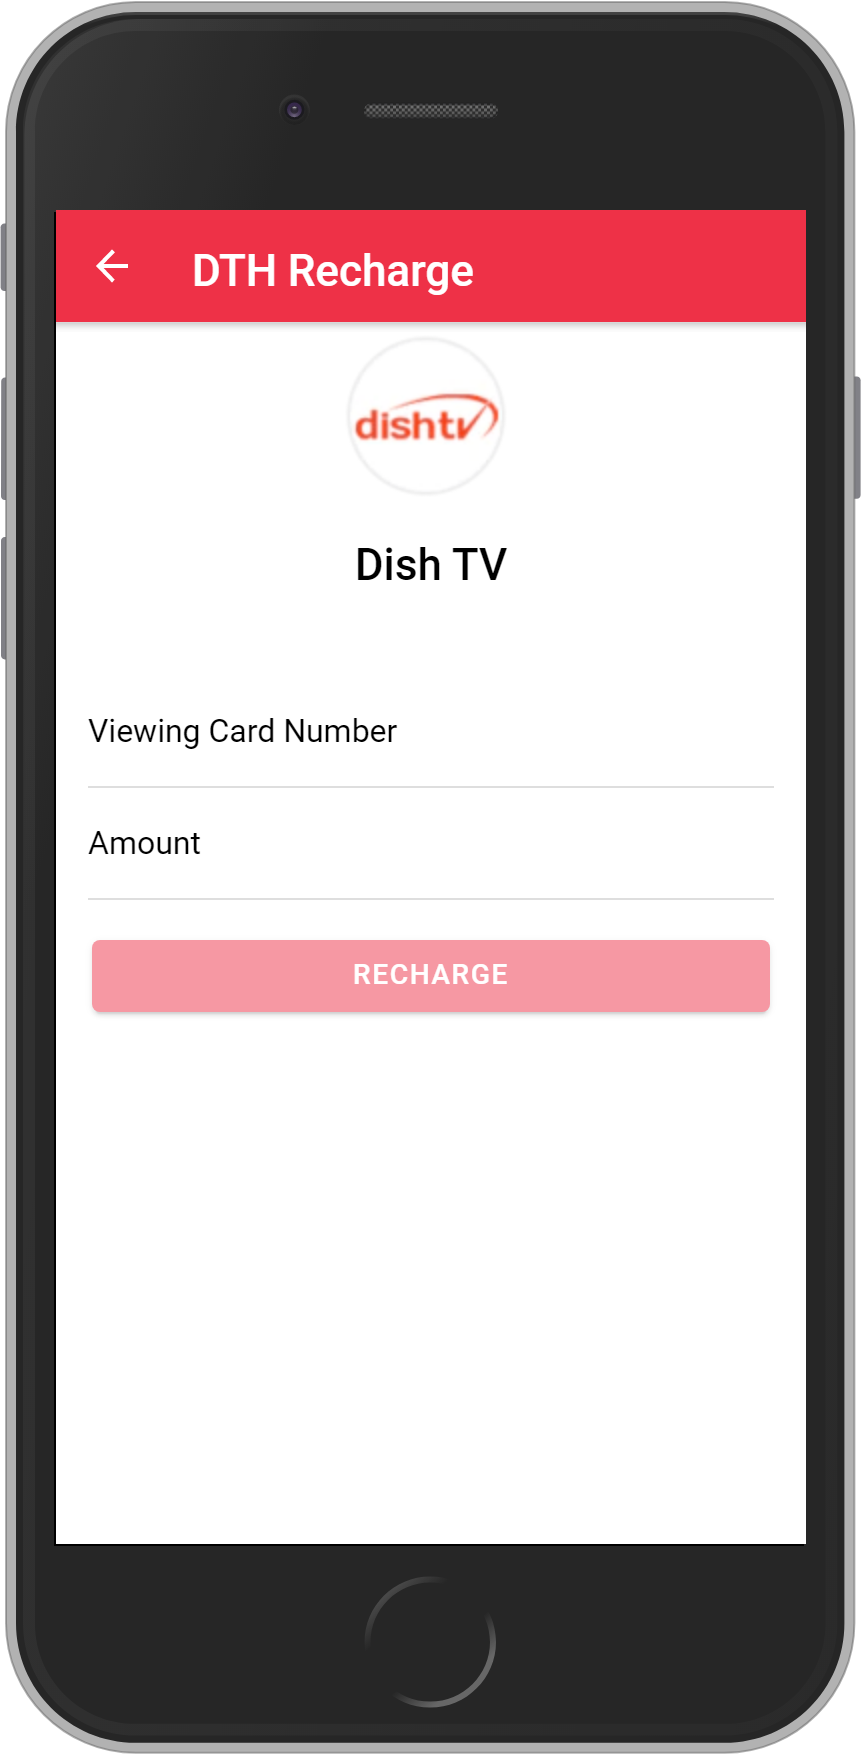 Get UNLIMITED <b>4%</b> CASHBACK on Dish TV Recharges.